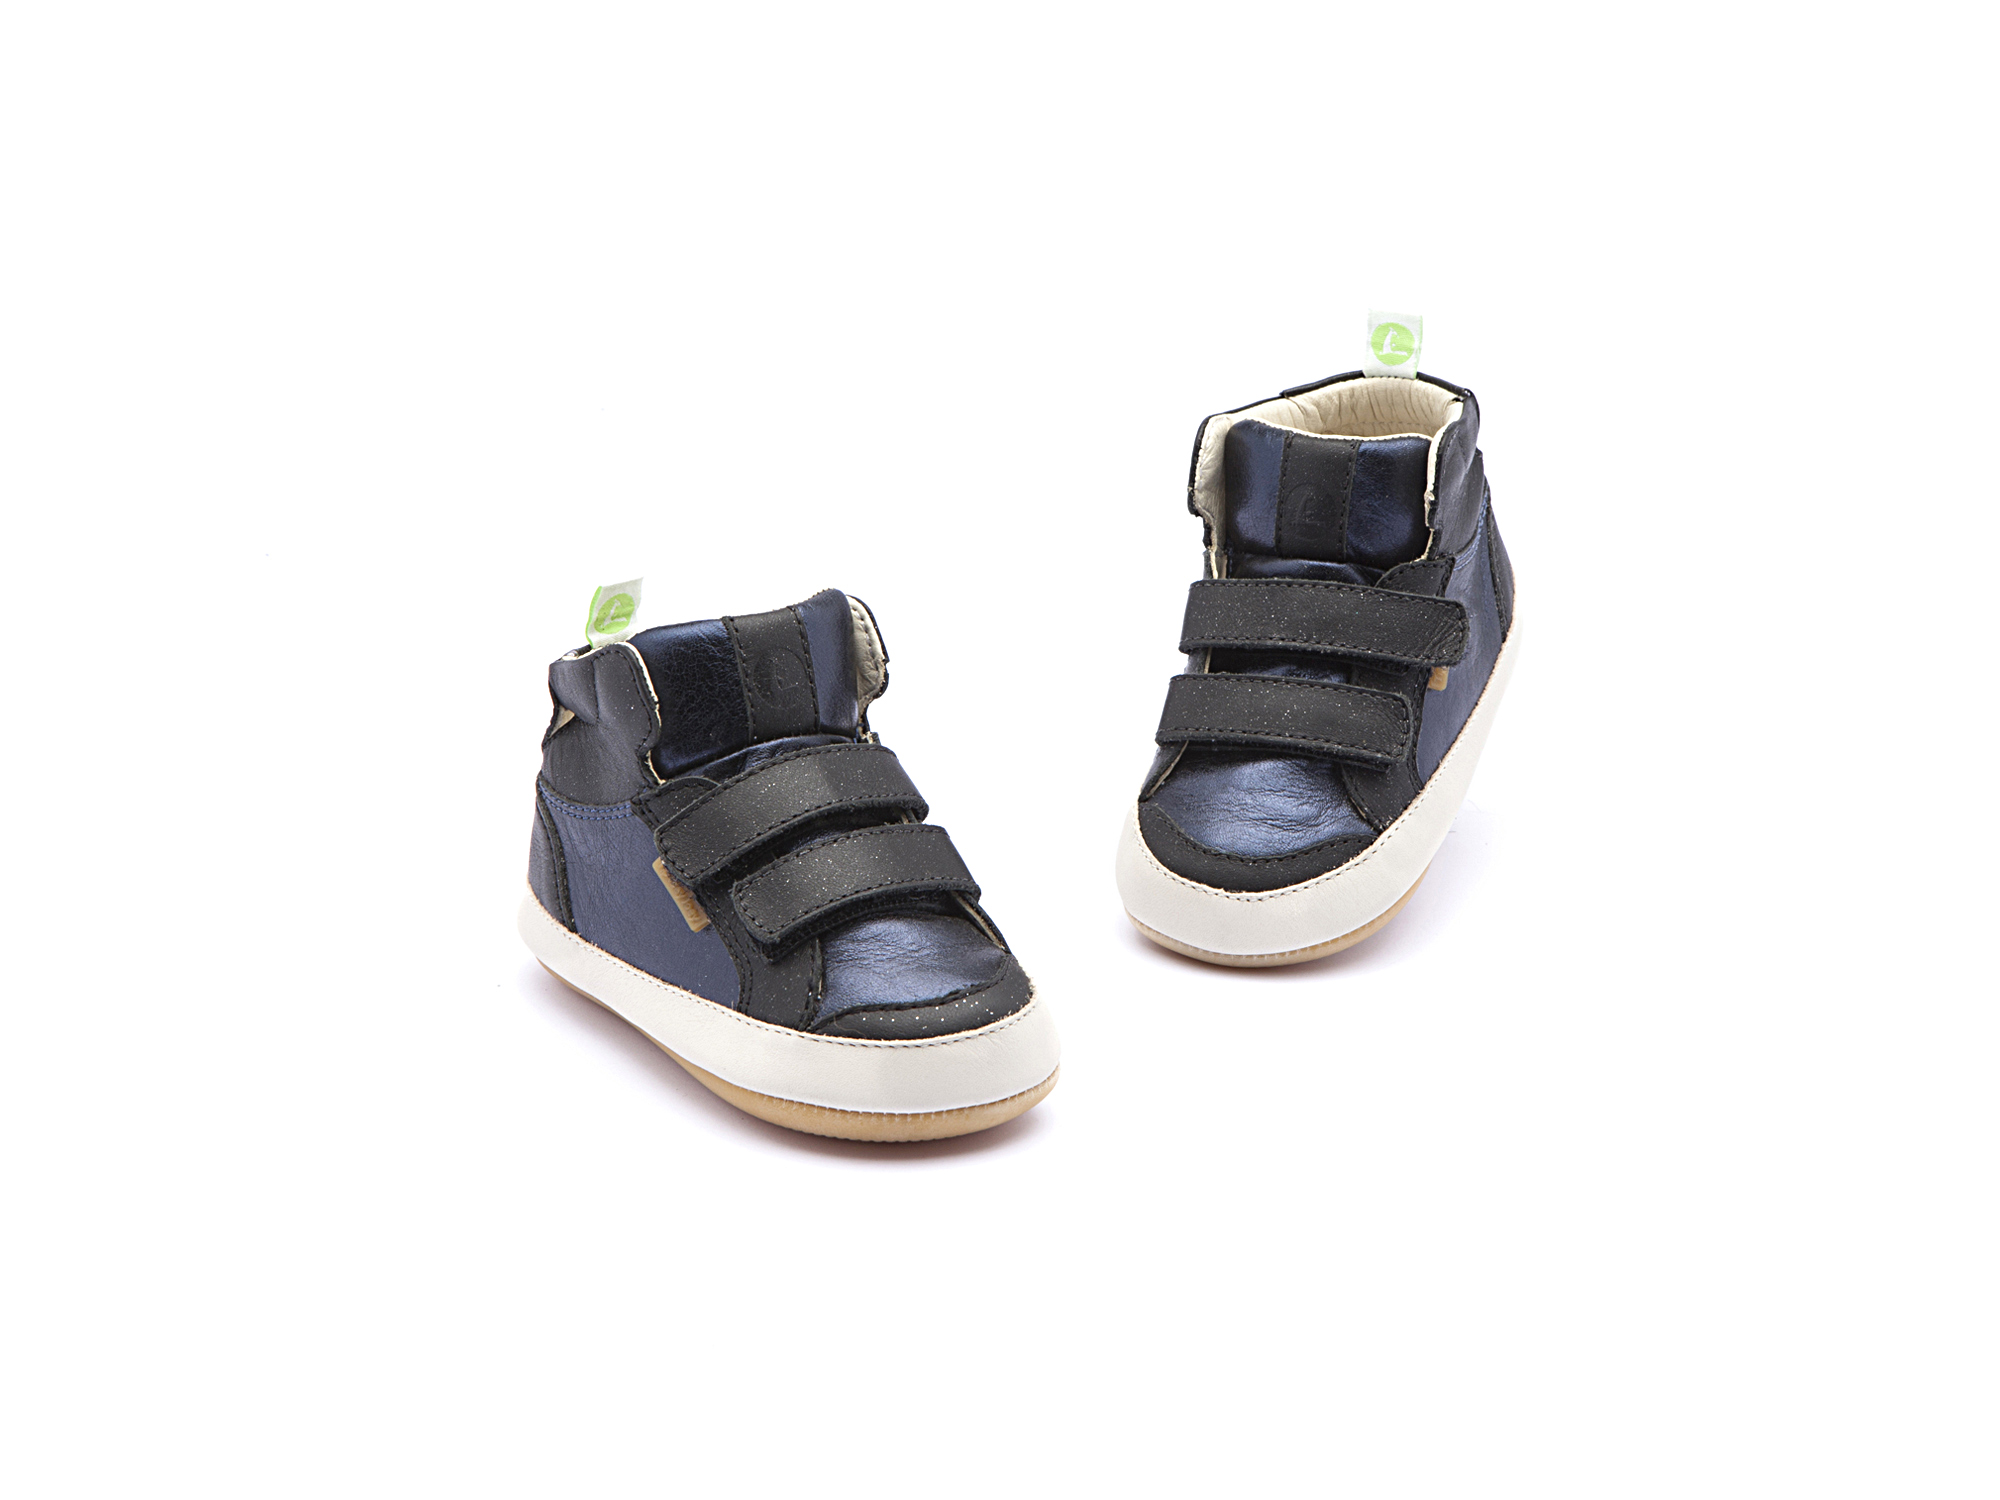 Bota Towny Black Galaxy/ Night Shine Baby 0 à 2 anos - 3